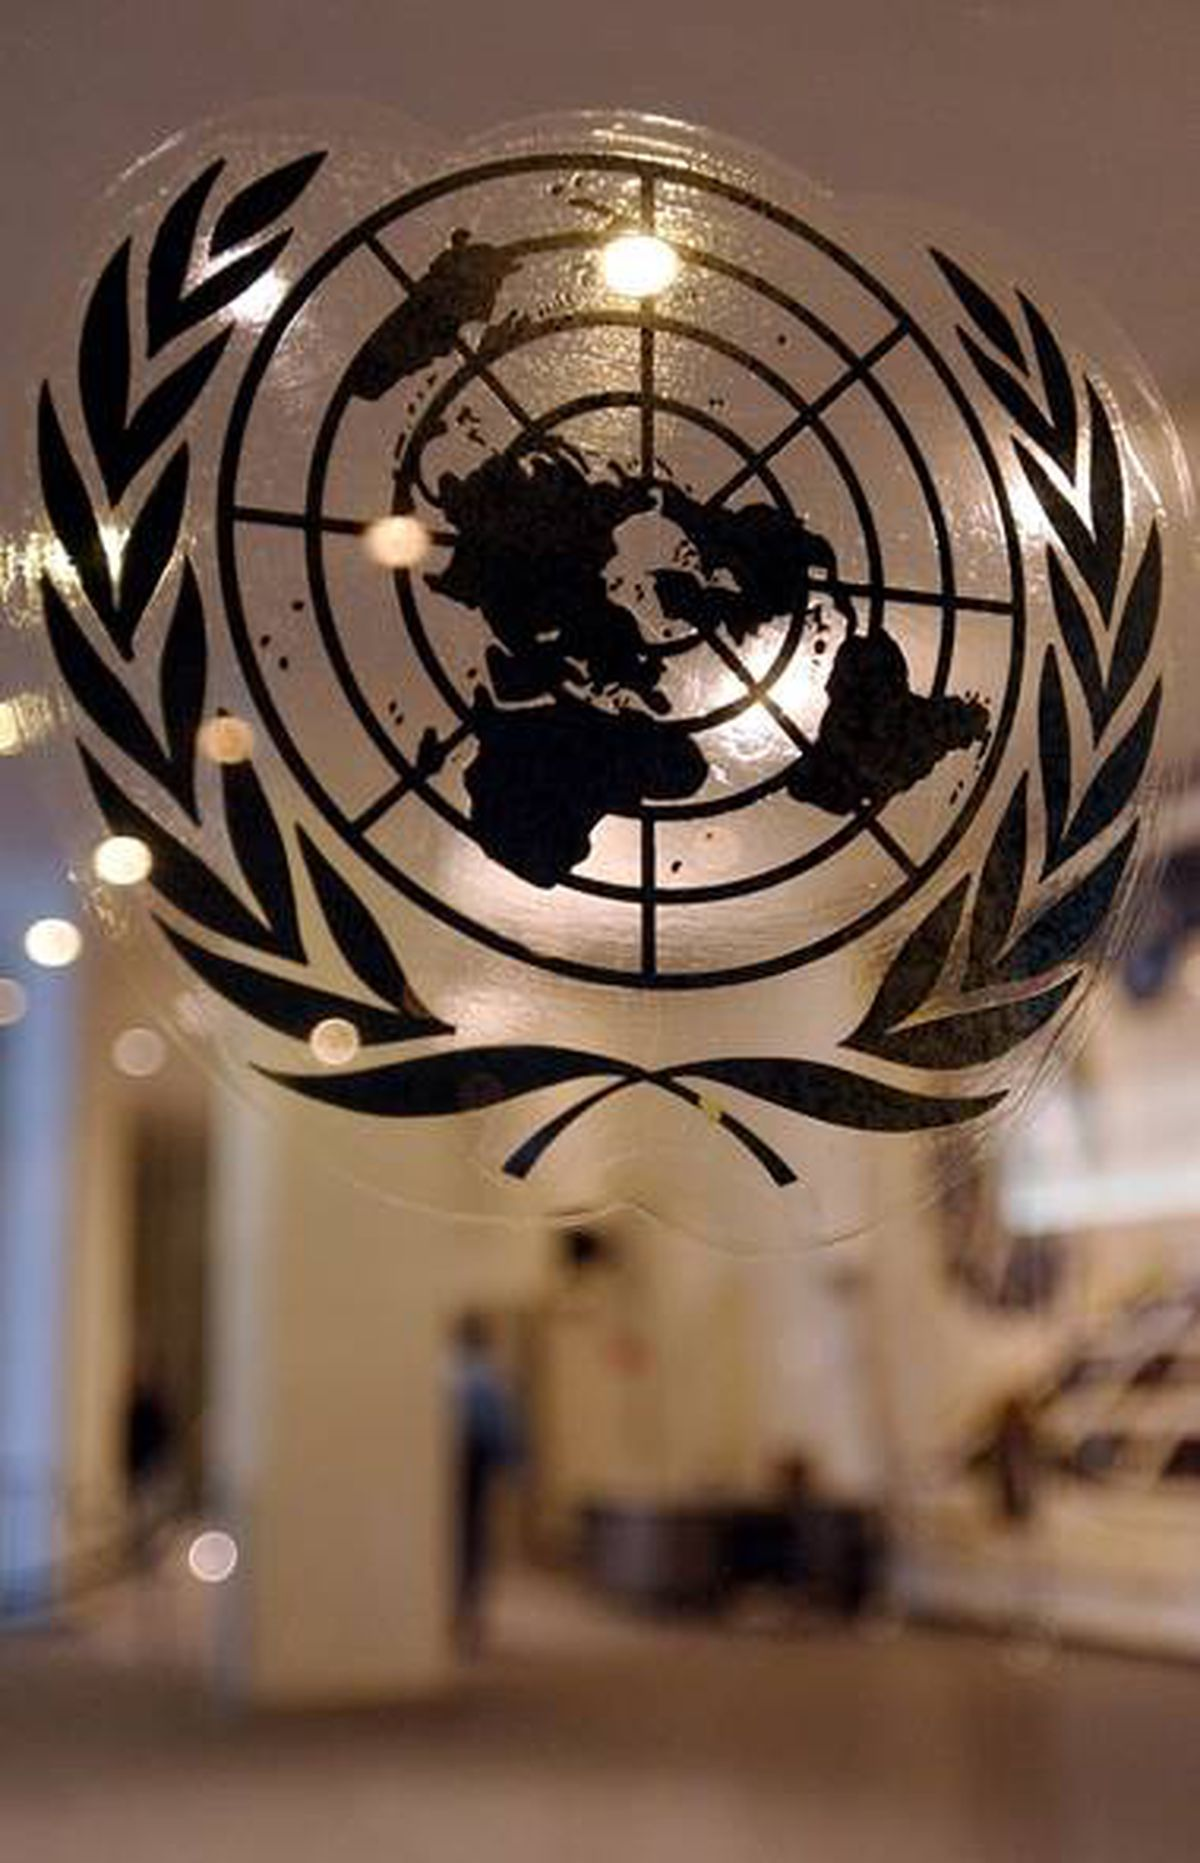 UNITED NATIONS: Le Monde, a French newspaper, said another memo asked U.S. diplomats to collect contact information about United Nations officials that included Internet passwords, credit card numbers and frequent flyer numbers. They were asked to obtain fingerprints, ID photos, DNA and iris scans of people of interest to the United States, the paper said.